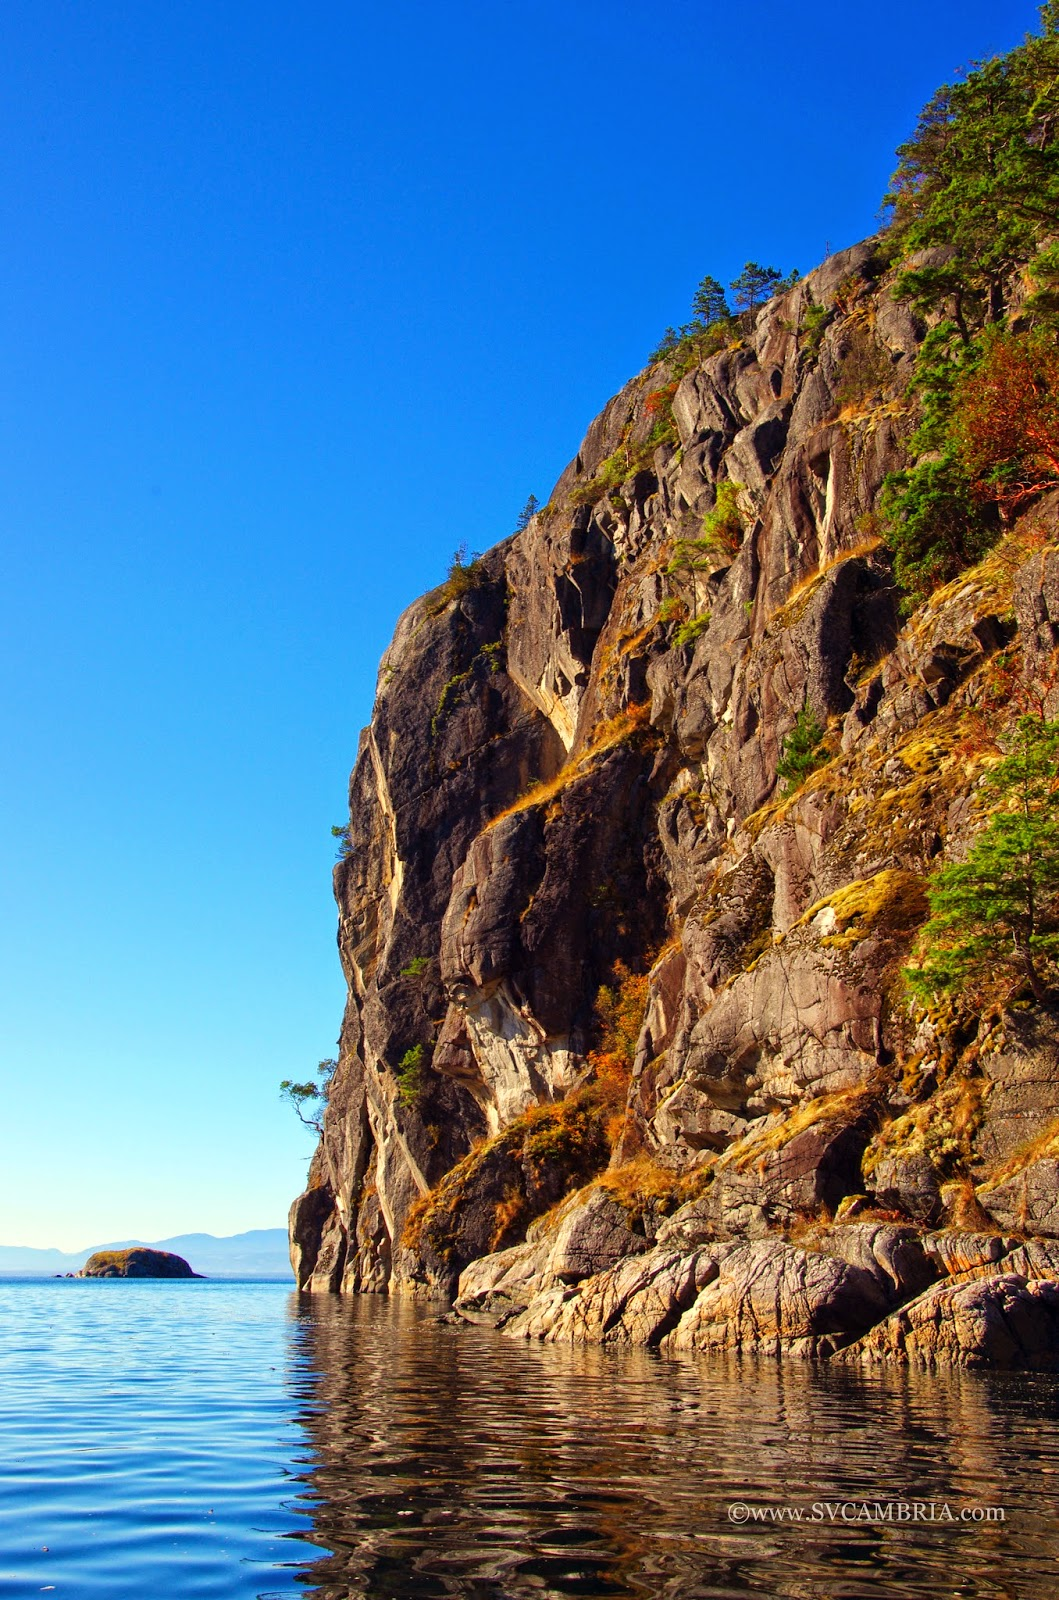 The entrance to Gorge Harbour, Cortes Island.